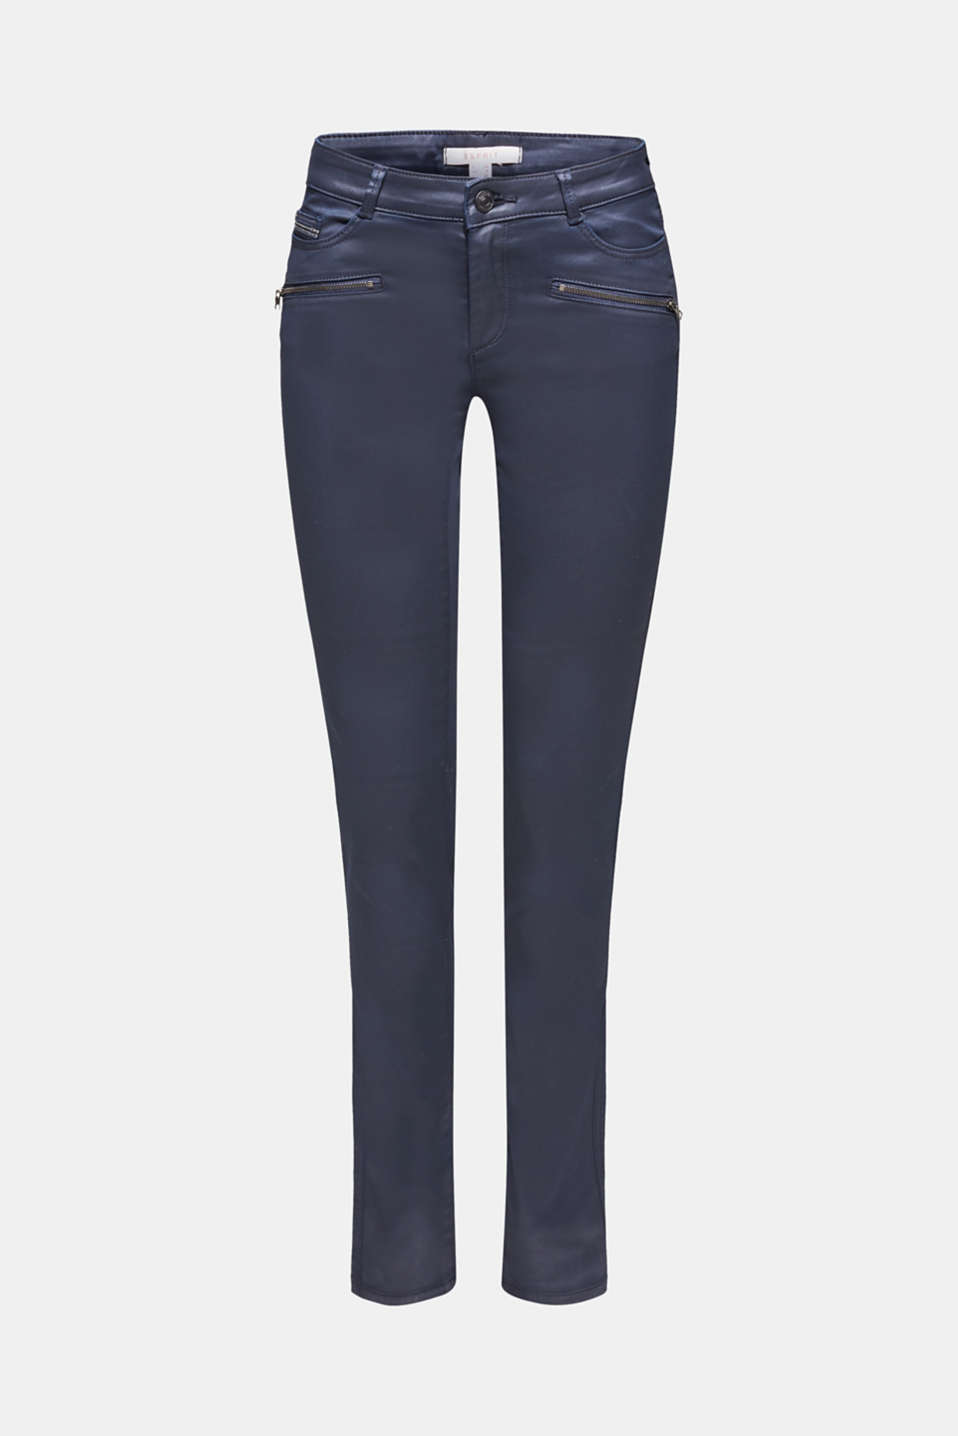 Coated stretch trousers with zips, NAVY, detail image number 7